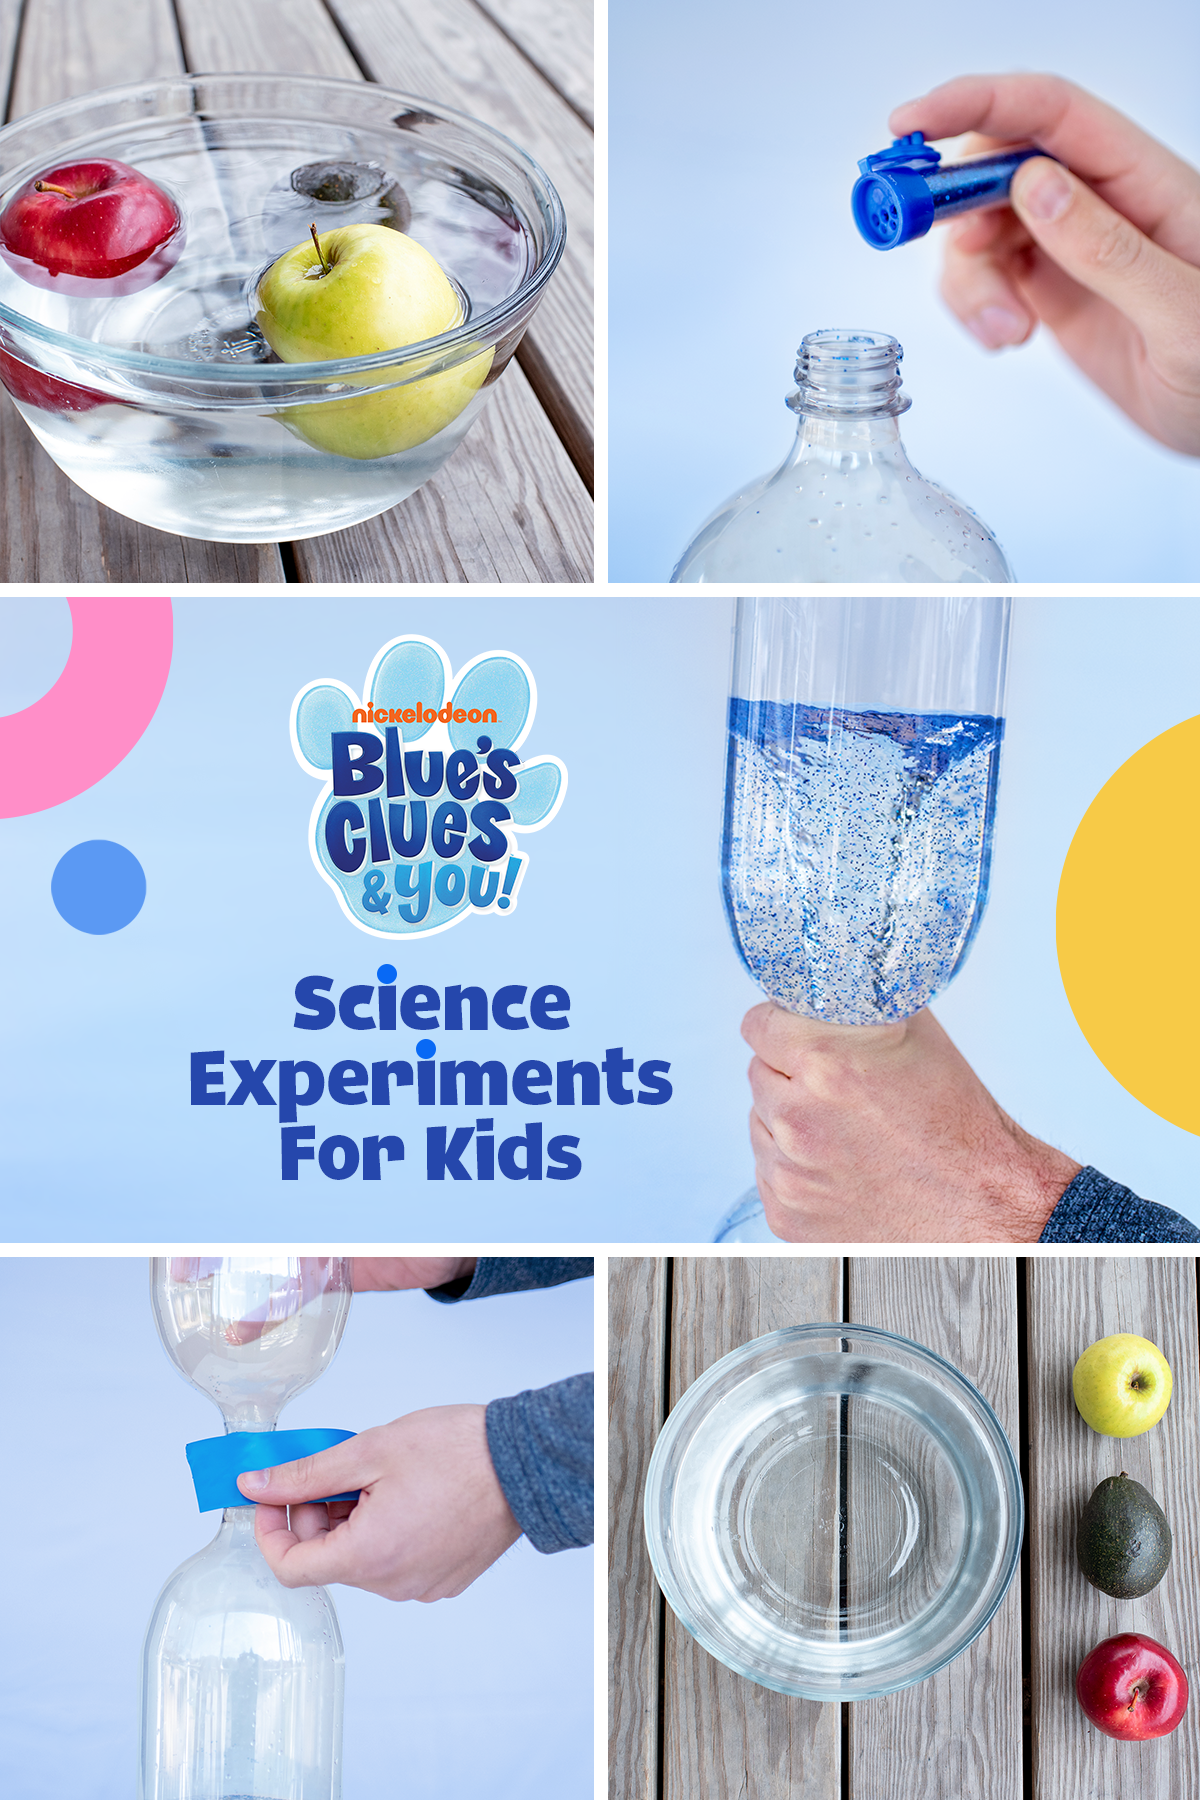 Blue's Clues Science Experiments For Kids